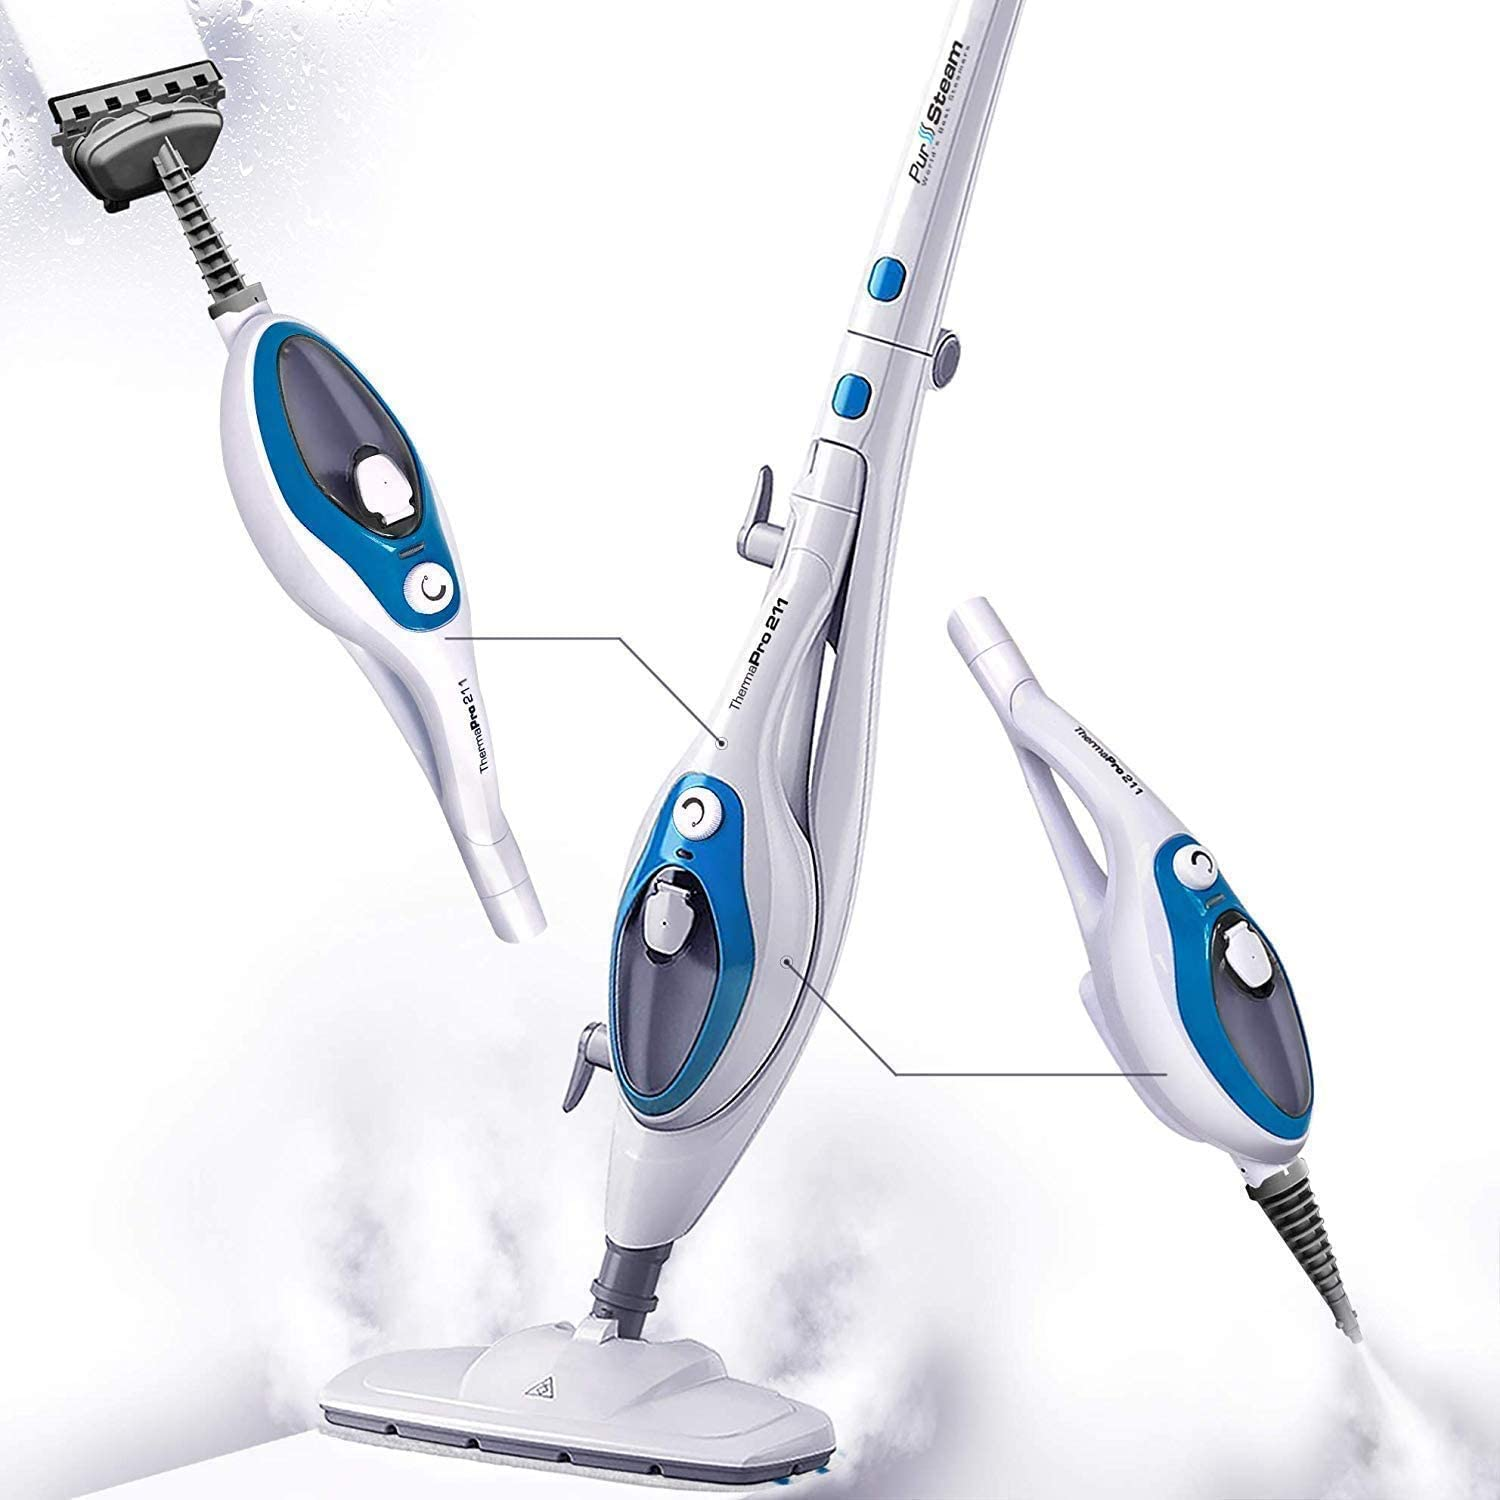 PurSteam Steam Mop Cleaner for Laminate Floors